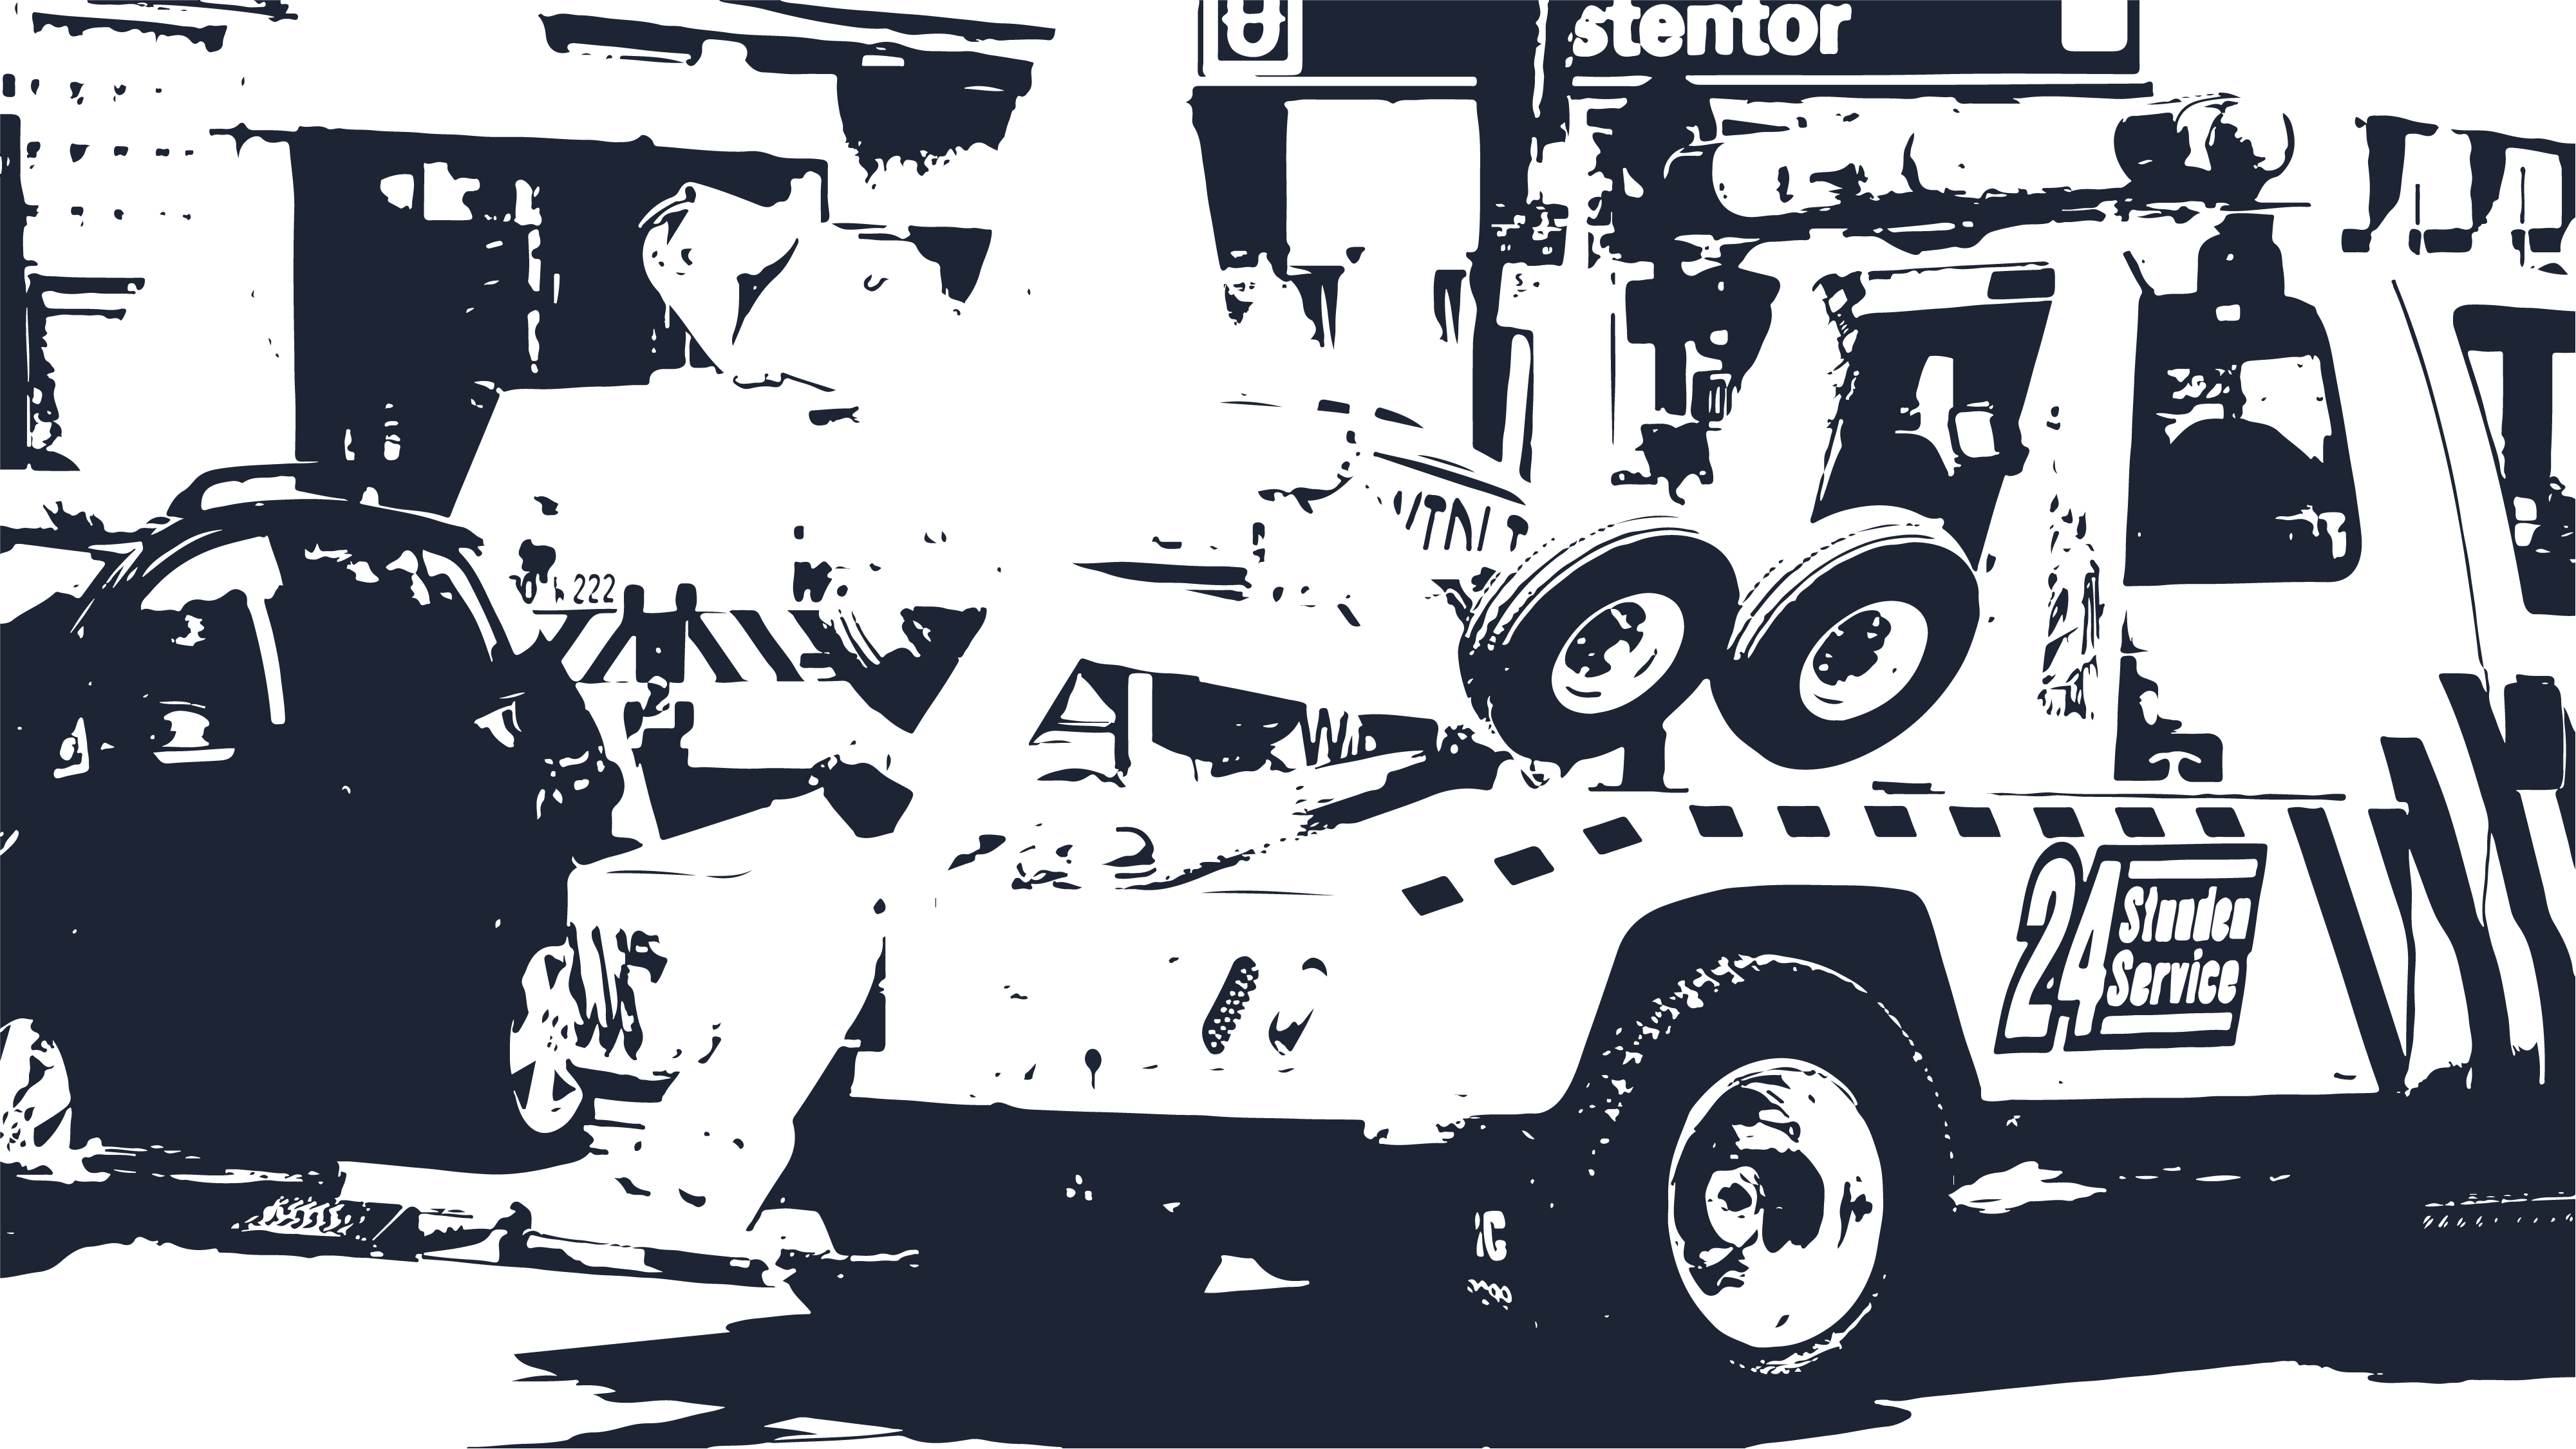 background image of a tow truck